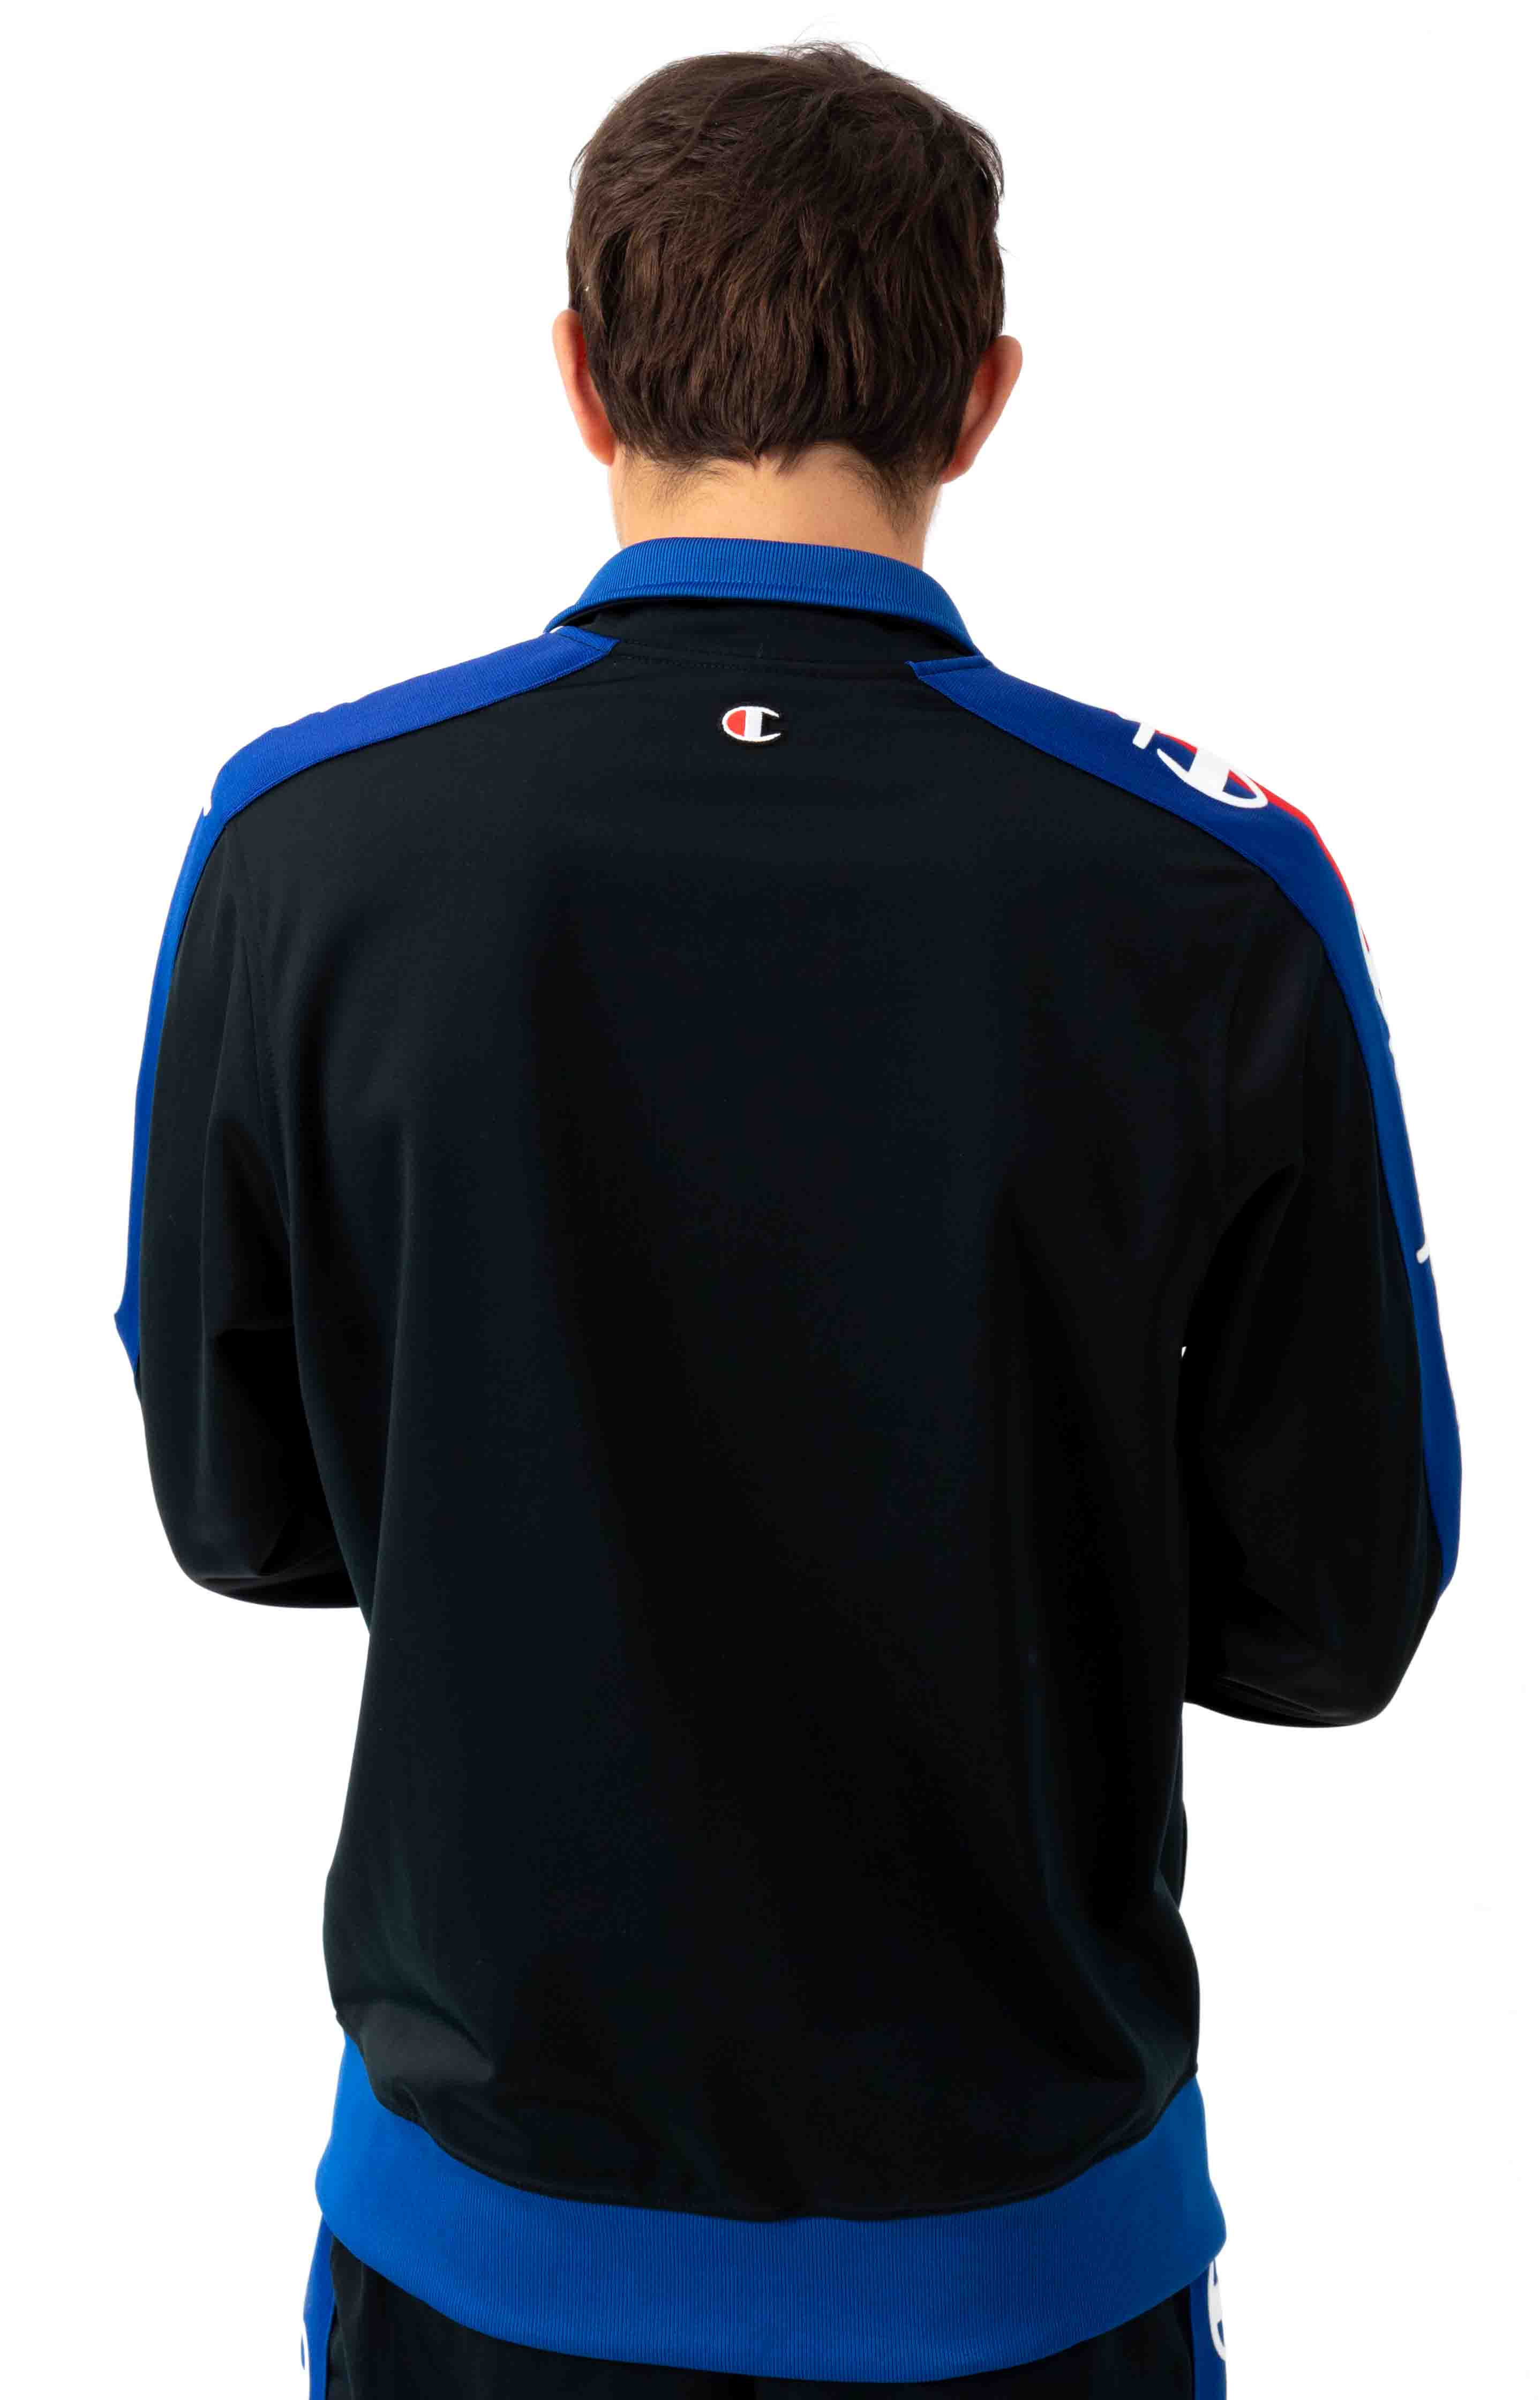 Tricot Track Jacket w/ Champion Taping - Black/Surf The Web 3